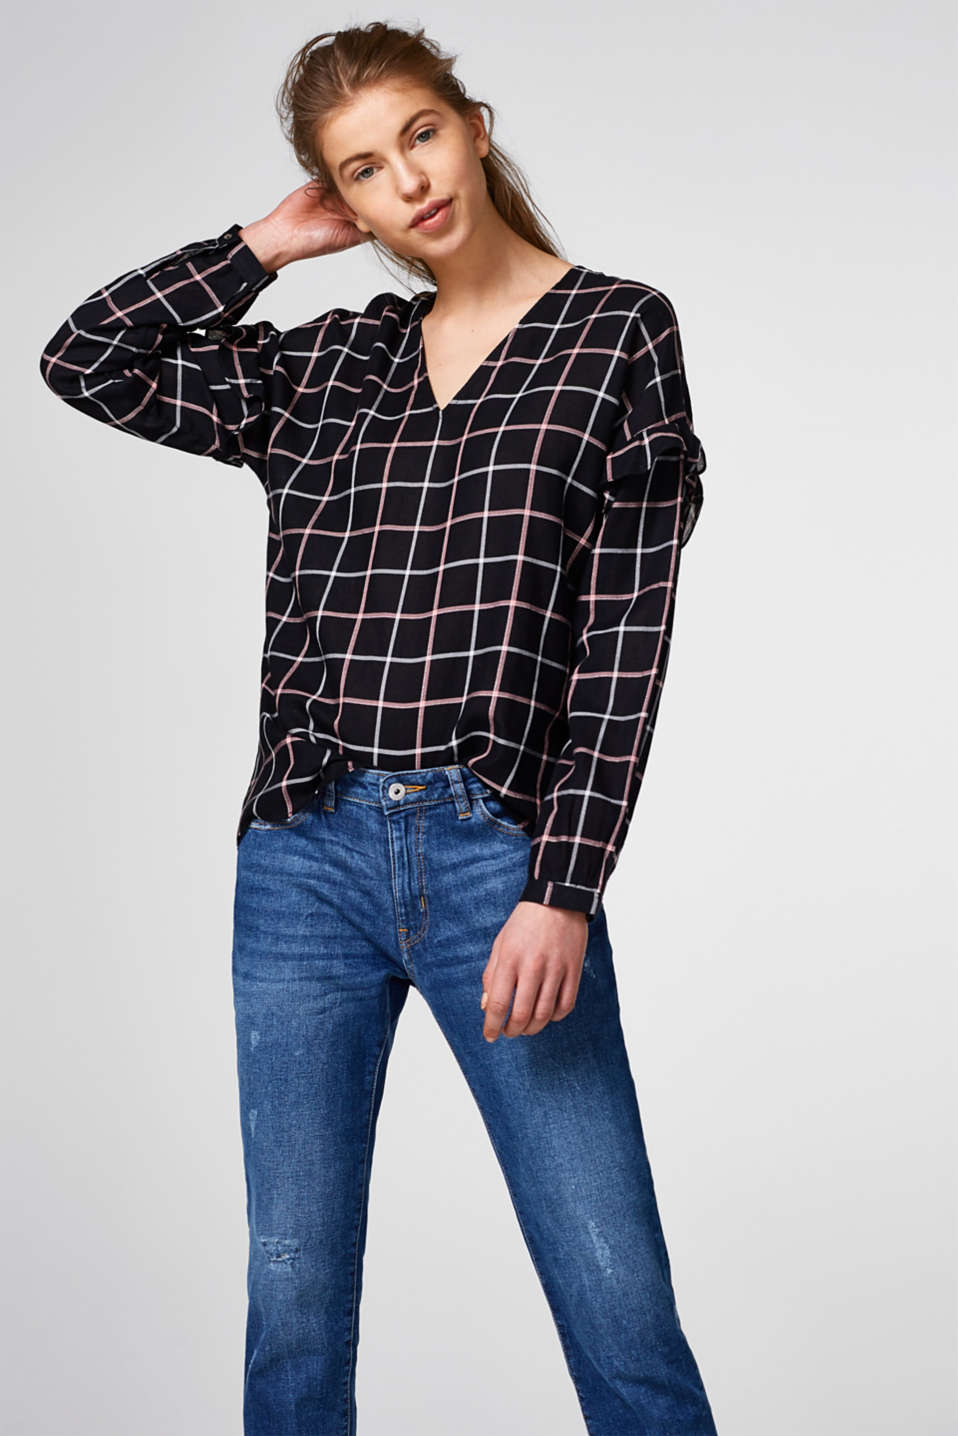 Esprit - Flowing check blouse with metallic effects